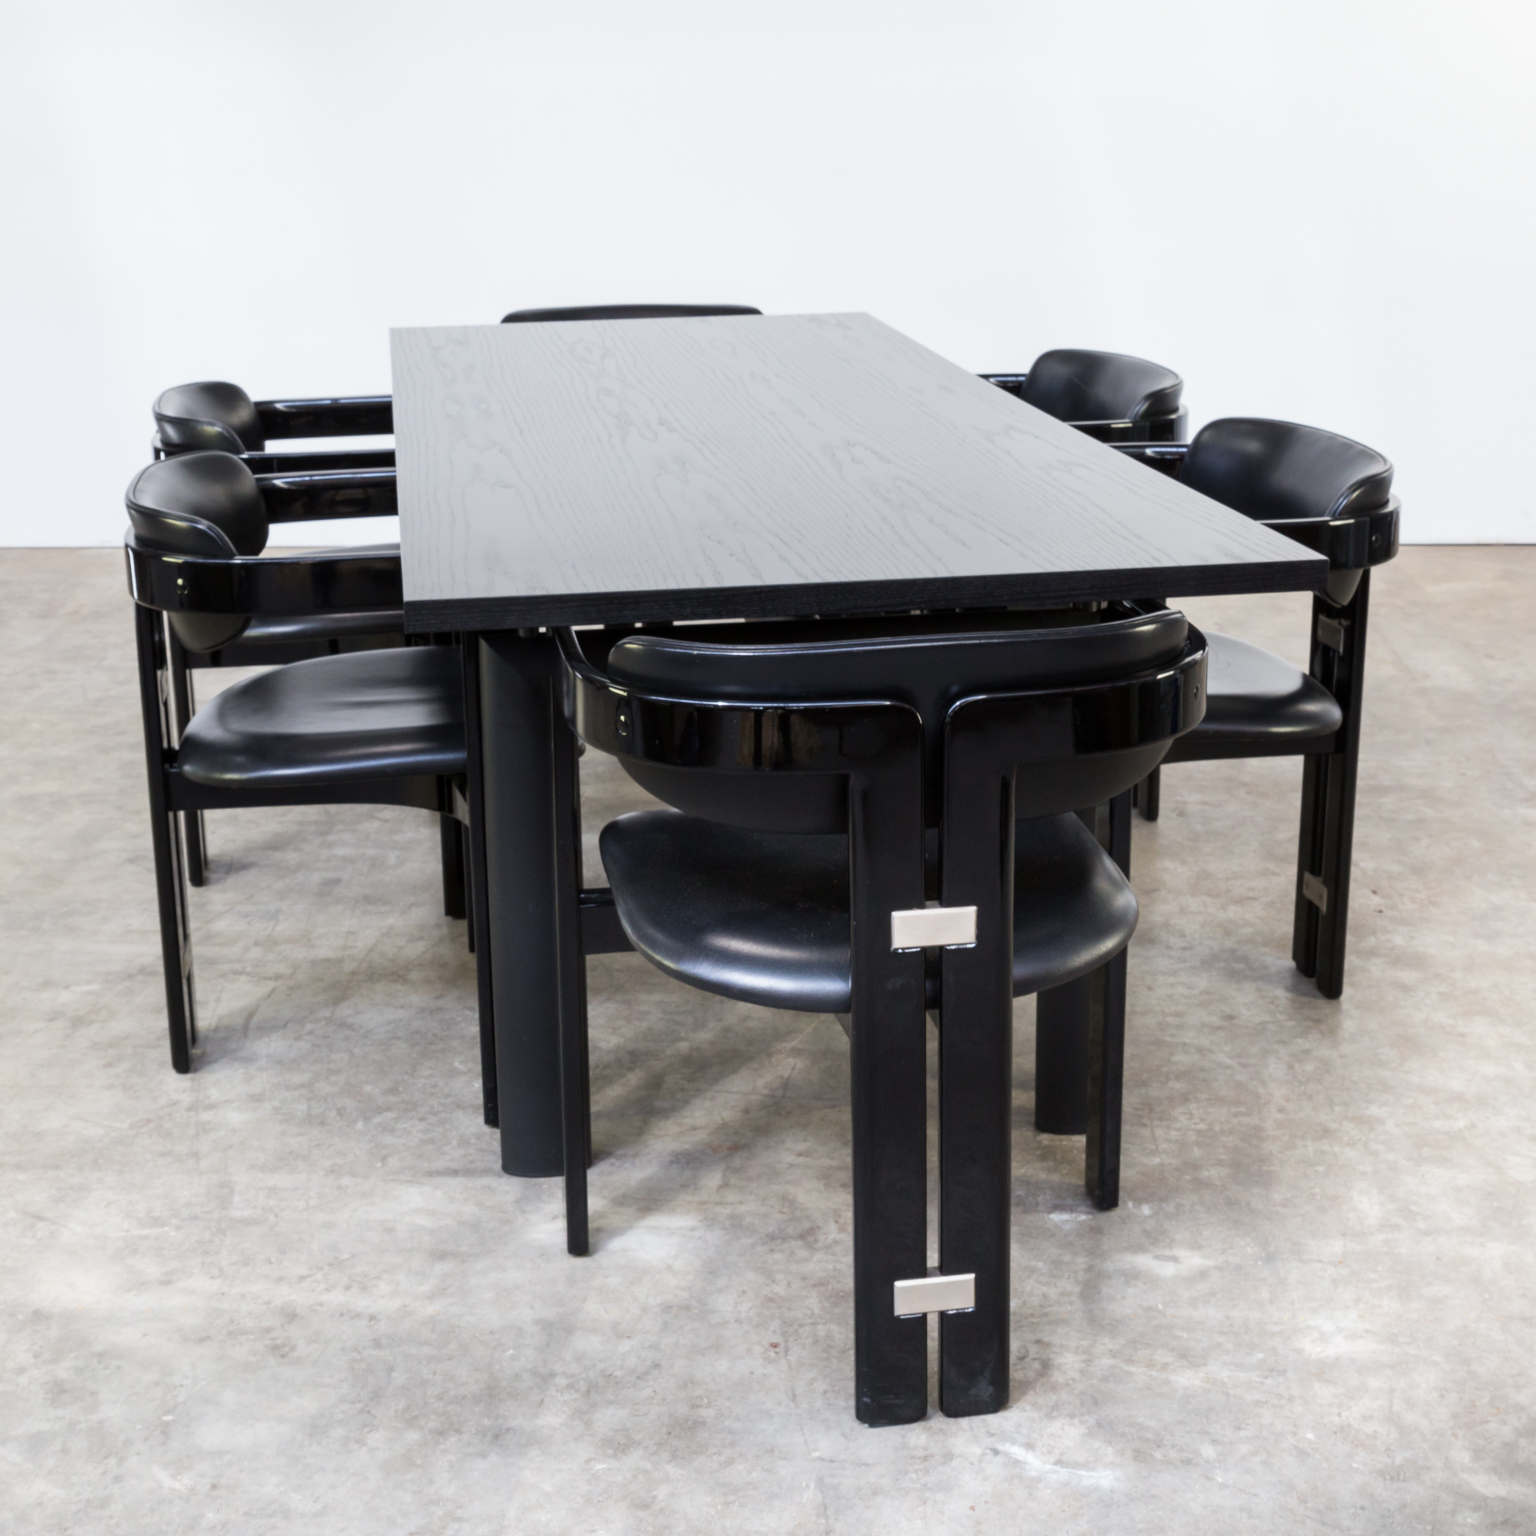 80s Le Corbusier LC6N nr 47905 dining table for Cassina | BarbMama